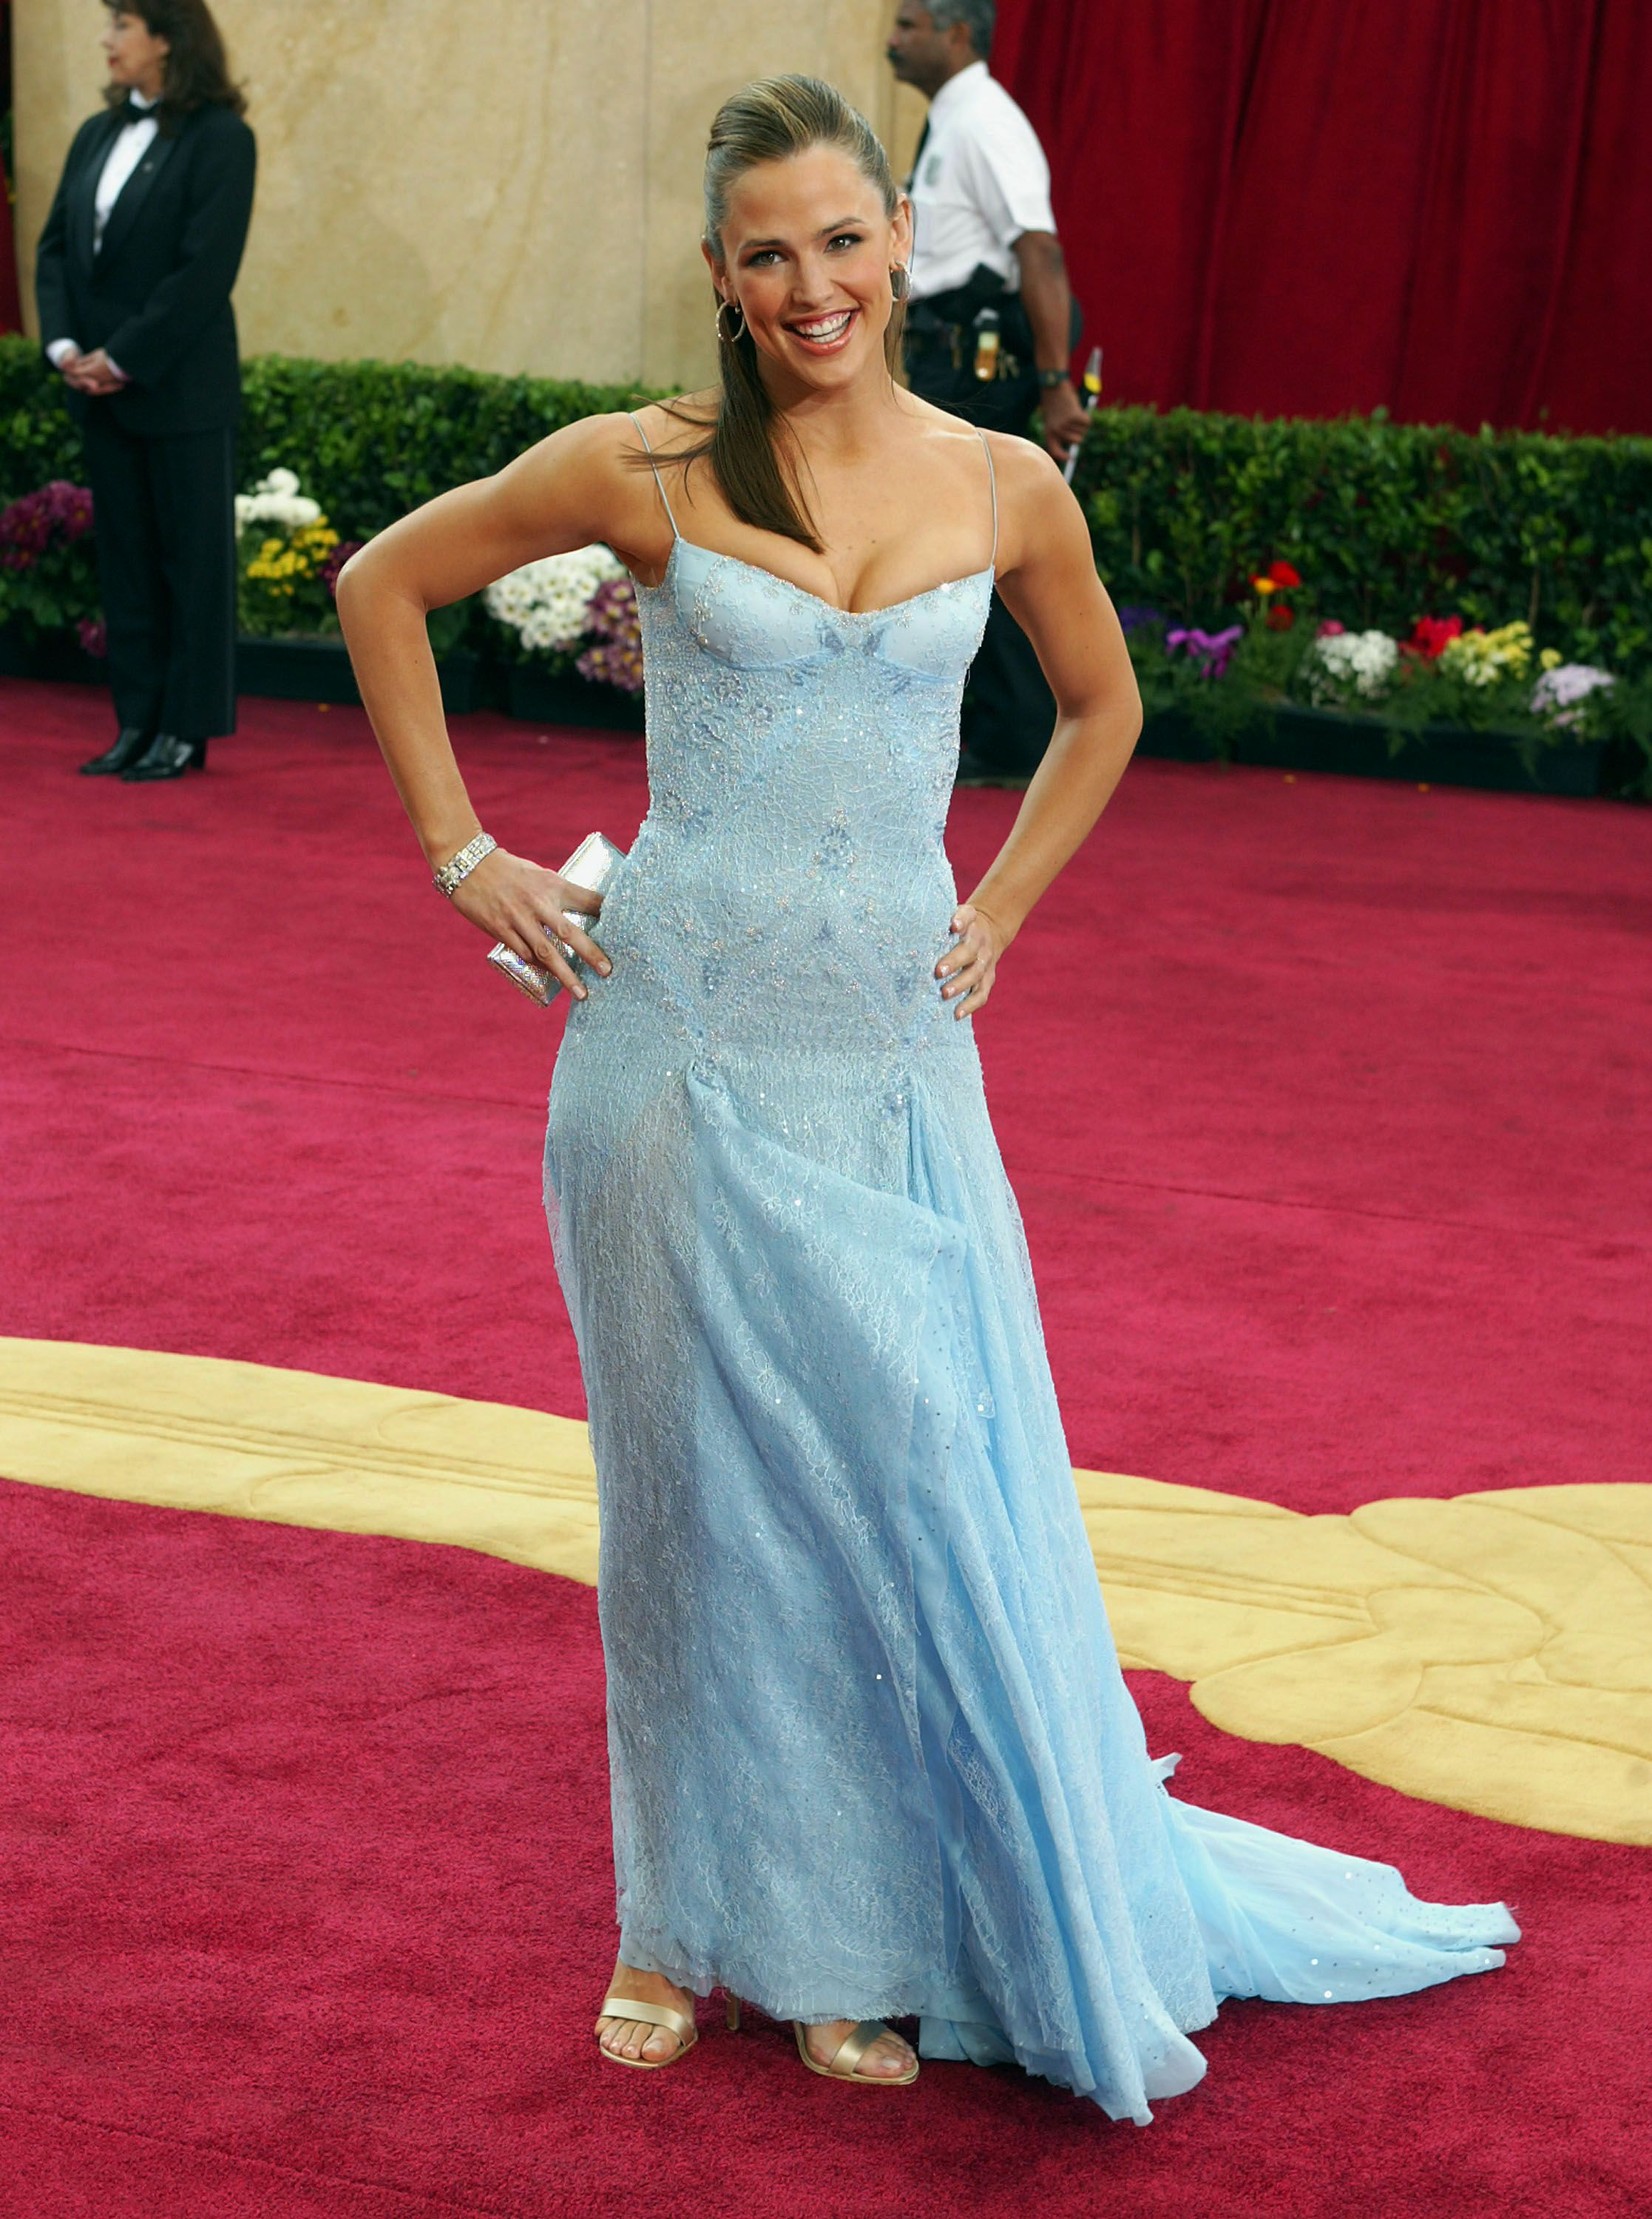 March 23, 2003 In Atelier Versace at the 75th annual Academy Awards in Hollywood.